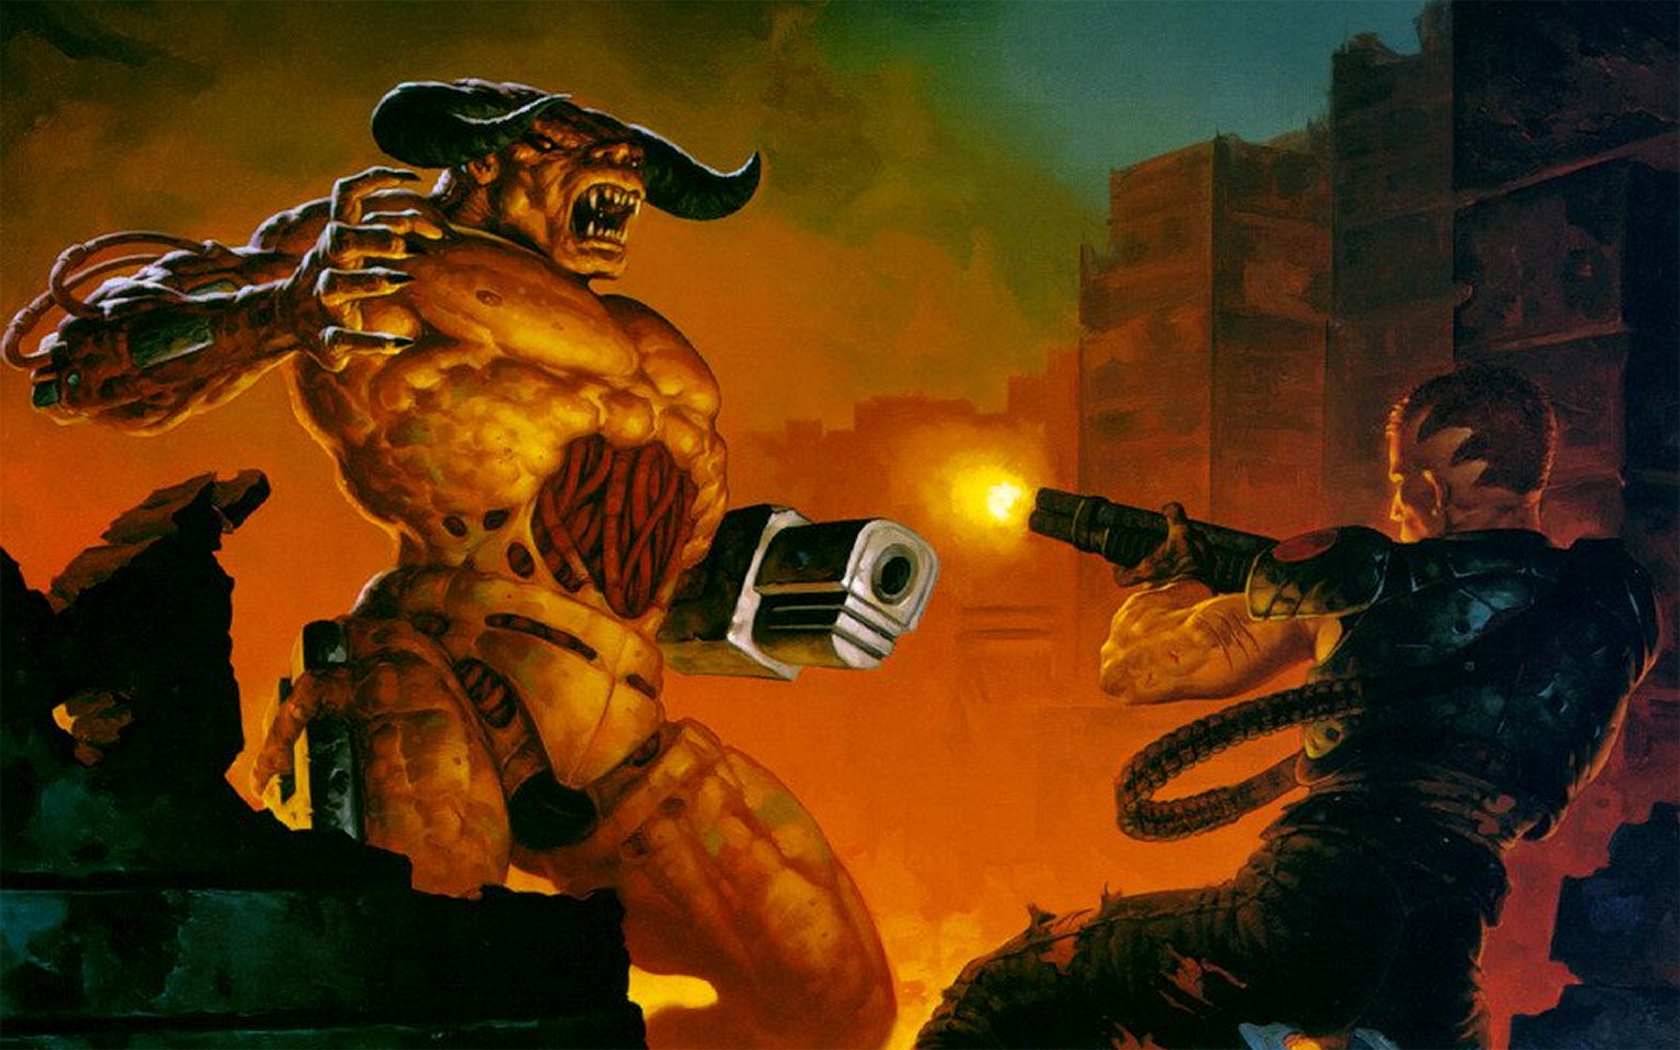 doom wallpaper 1366x768 - photo #21